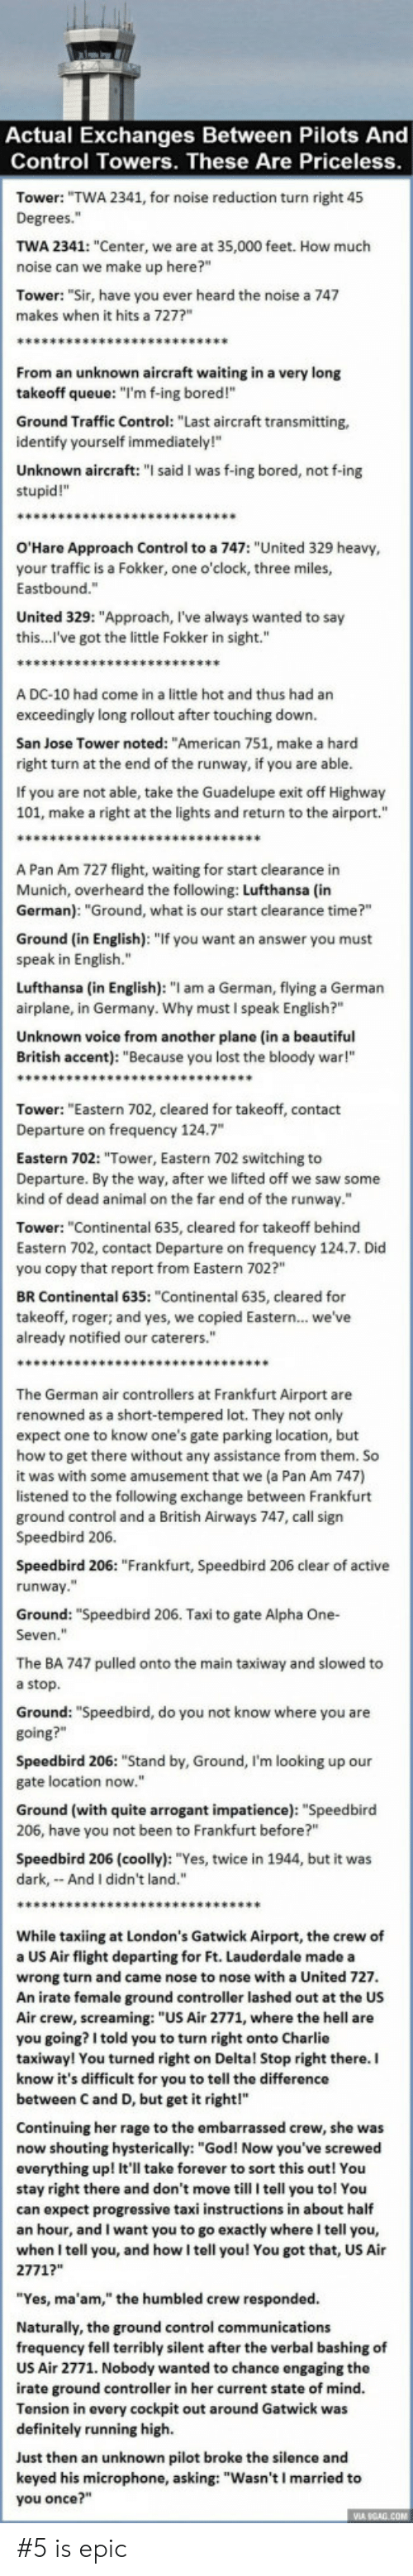 "Beautiful, Bored, and Charlie: Actual Exchanges Between Pilots And  Control Towers. These Are Priceless  Tower: ""TWA 2341, for noise reduction turn right 45  Degrees.""  TWA 2341: ""Center, we are at 35,000 feet. How much  noise can we make up here?""  Tower: ""Sir, have you ever heard the noise a 747  makes when it hits a 727?  From an unknown aircraft waiting in a very long  takeoff queue: ""I'm f-ing bored!""  Ground Traffic Control: ""Last aircraft transmitting,  identify yourself immediately!""  Unknown aircraft: "" said I was f-ing bored, not f-ing  stupid!""  O'Hare Approach Control to a 747: ""United 329 heavy  your traffic is a Fokker, one o'clock, three miles,  Eastbound.""  United 329: ""Approach, l've always wanted to say  this...l've got the little Fokker in sight.""  A DC-10 had come in a little hot and thus had an  exceedingly long rollout after touching down.  San Jose Tower noted: ""American 751, make a harcd  right turn at the end of the runway, if you are able  If you are not able, take the Guadelupe exit off Highway  101, make a right at the lights and return to the airport.""  A Pan Am 727 flight, waiting for start clearance in  Munich, overheard the following: Lufthansa (in  German): ""Ground, what is our start clearance time?""  Ground (in English): ""If you want an answer you must  speak in English.""  Lufthansa (in English): ""I am a German, flying a German  airplane, in Germany. Why must I speak English?""  Unknown voice from another plane (in a beautiful  British accent): ""Because you lost the bloody war!""  Tower: ""Eastern 702, cleared for takeoff, contact  Departure on frequency 124.7  Eastern 702: ""Tower, Eastern 702 switching to  Departure. By the way, after we lifted off we saw some  kind of dead animal on the far end of the runway.""  Tower: ""Continental 635, cleared for takeoff behind  Eastern 702, contact Departure on frequency 124.7. Did  you copy that report from Eastern 702?""  BR Continental 635: ""Continental 635, cleared for  takeoff, roger; and yes, we copied Eastern... we've  already notified our caterers.""  The German air controllers at Frankfurt Airport are  renowned as a short-tempered lot. They not only  expect one to know one's gate parking location, but  how to get there without any assistance from them. So  it was with some amusement that we (a Pan Am 747)  listened to the following exchange between Frankfurt  ground control and a British Airways 747, call sign  Speedbird 206.  Speedbird 206: ""Frankfurt, Speedbird 206 clear of active  runway  Ground: ""Speedbird 206. Taxi to gate Alpha One-  Seven.""  The BA 747 pulled onto the main taxiway and slowed to  a stop  Ground: ""Speedbird, do you not know where you are  Speedbird 206: ""Stand by, Ground, I'm looking up our  gate location now.""  Ground (with quite arrogant impatience): ""Speedbird  206, have you not been to Frankfurt before?""  Speedbird 206 (coolly): ""Yes, twice in 1944, but it was  dark, And I didn't land.""  While taxiing at London's Gatwick Airport, the crew of  a US Air flight departing for Ft. Lauderdale made a  wrong turn and came nose to nose with a United 727  An irate female ground controller lashed out at the US  Air crew, screaming: ""US Air 2771, where the hell are  you going? I told you to turn right onto Charlie  taxiway! You turned right on Deltal Stop right there. I  know it's difficult for you to tell the difference  between C and D, but get it right!""  Continuing her rage to the embarrassed crew, she was  now shouting hysterically: ""God! Now you've screwed  everything up! It'll take forever to sort this out! You  stay right there and don't move till I tell you tol You  can expect progressive taxi instructions in about half  an hour, and I want you to go exactly whereI tell you,  when I tell you, and how I tell you! You got that, US Air  2771?""  ""Yes, ma'am,"" the humbled crew responded.  Naturally, the ground control communications  frequency fell terribly silent after the verbal bashing of  US Air 2771. Nobody wanted to chance engaging the  irate ground controller in her current state of mind.  Tension in every cockpit out around Gatwick was  definitely running high.  Just then an unknown pilot broke the silence and  keyed his microphone, asking: ""Wasn't I married to  you once?"" #5 is epic"